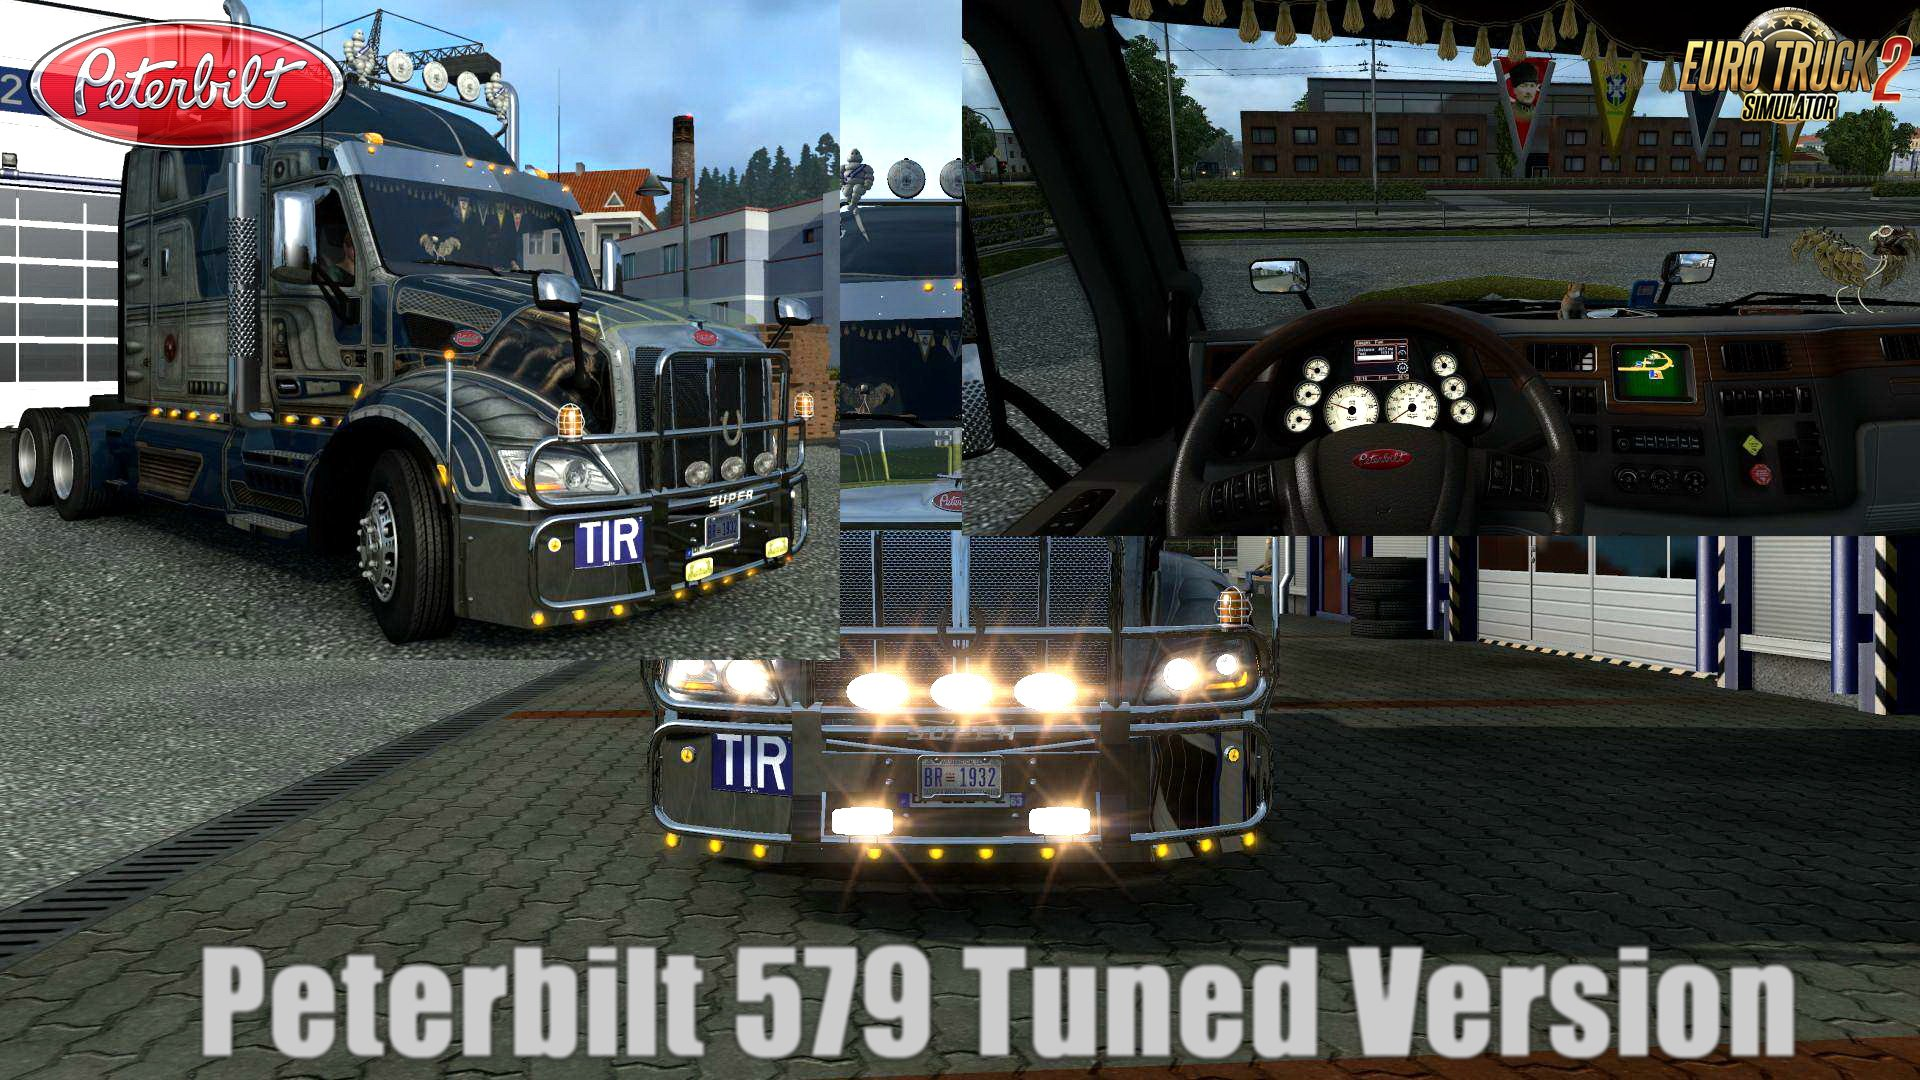 Peterbilt 579 Tuned Version v1.0 (1.28.x)